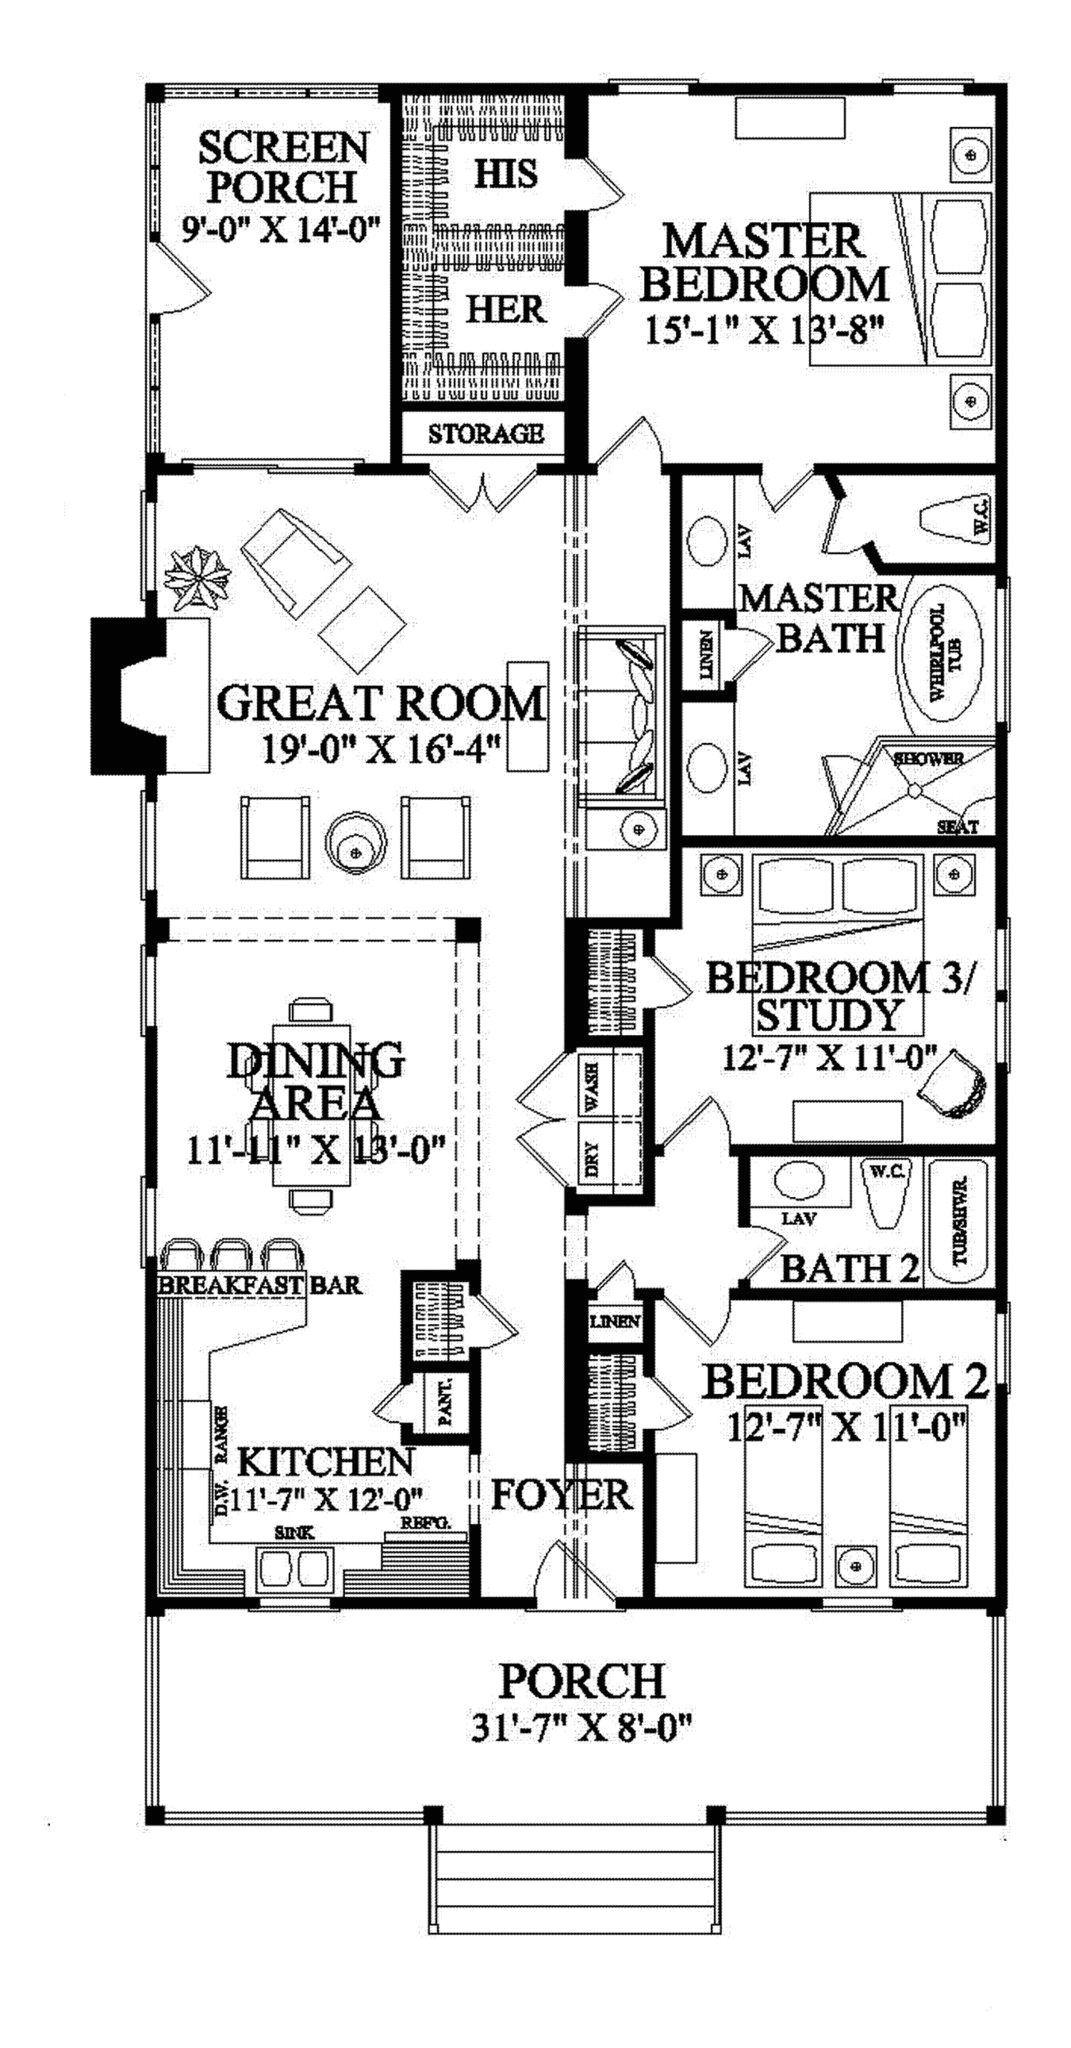 Narrow House Plans with Garage In Back Narrow Lot House ... on house with attached 4 car garage, narrow house elevations, narrow lot houses with garage in back, narrow urban row house plans, narrow lot designs, narrow house plans with views, narrow depth house plans, narrow block house plans, narrow lakefront house plans, home with garage, narrow houses floor plans, narrow house designs, narrow beach house, lake front house with garage, narrow lot plans, narrow townhouse plans,